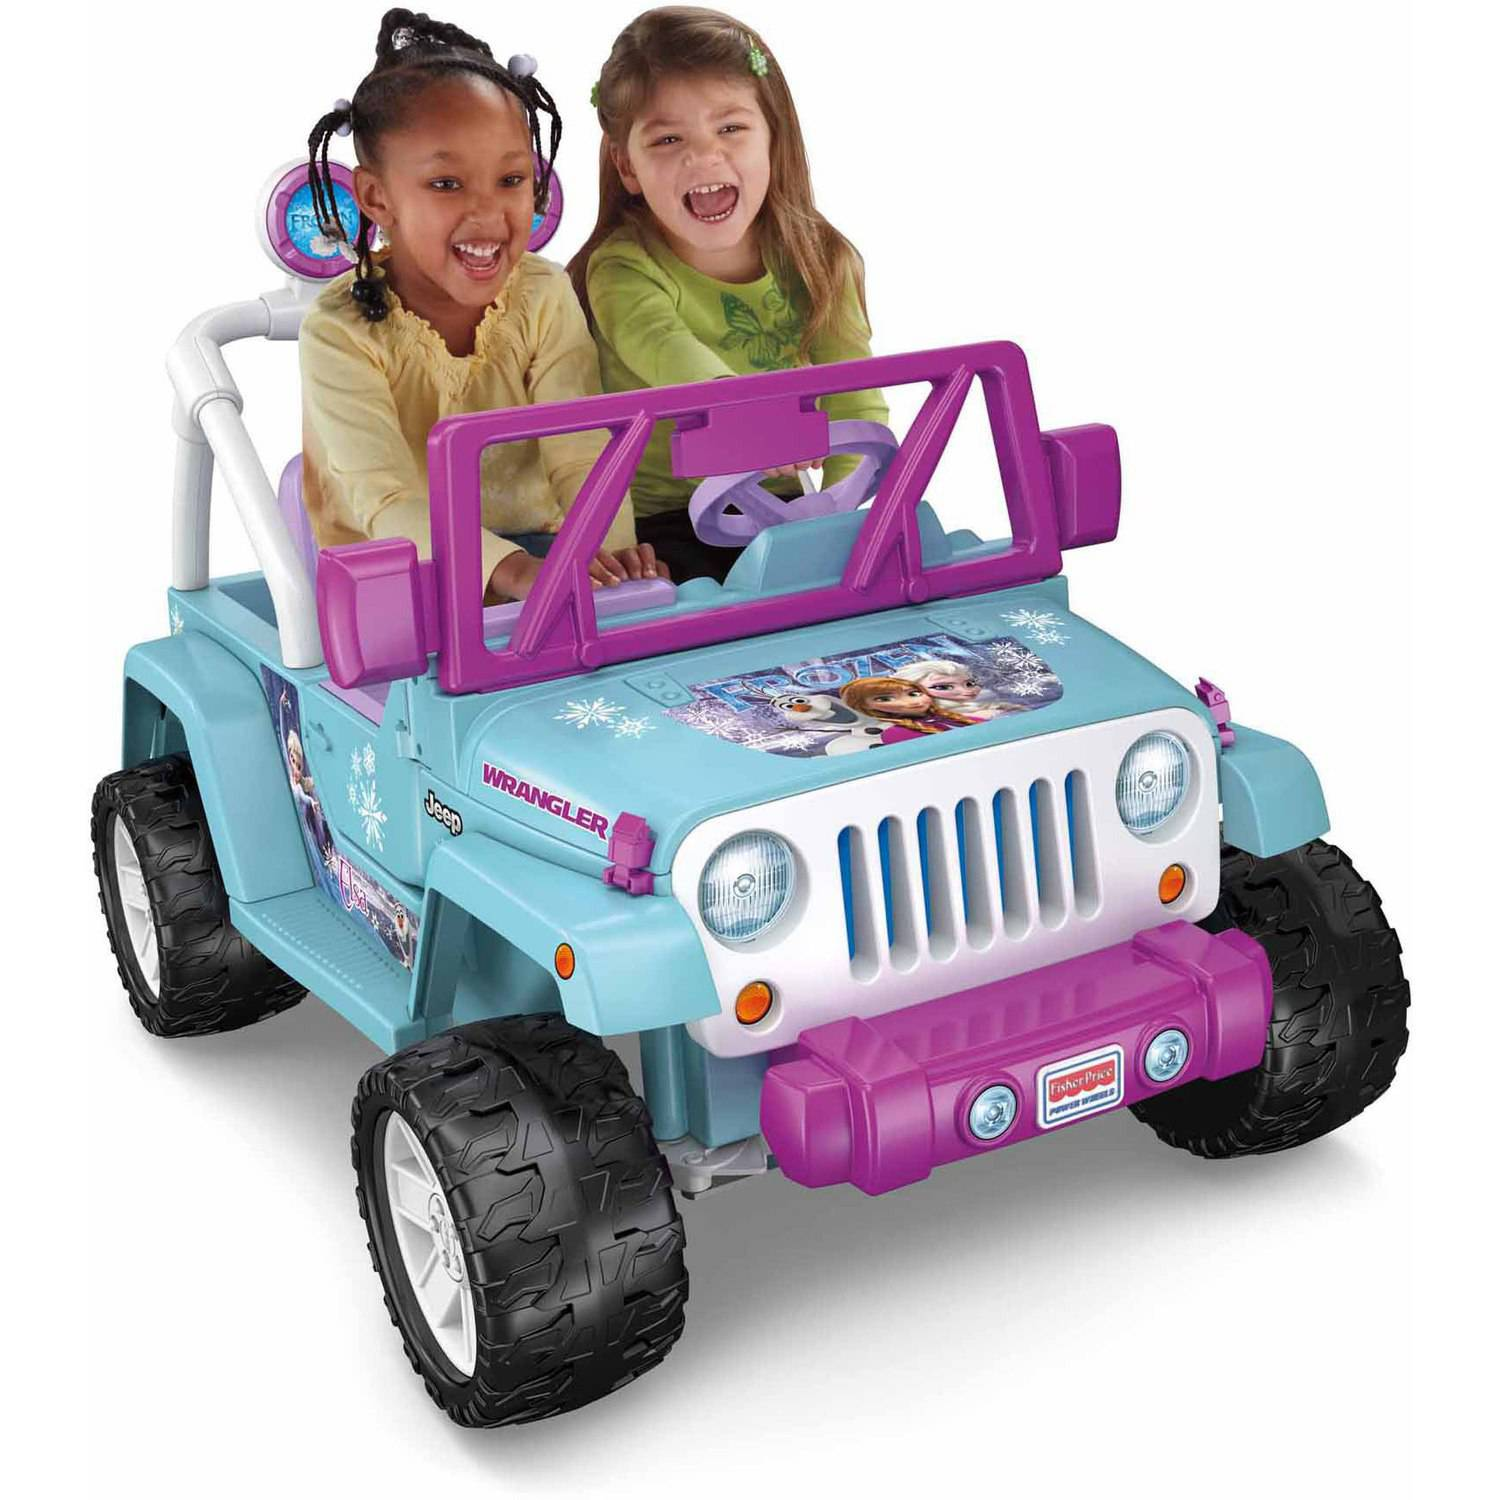 Fisher-Price Power Wheels Disney Frozen Jeep Wrangler 12-Volt Battery-Powered Ride-On